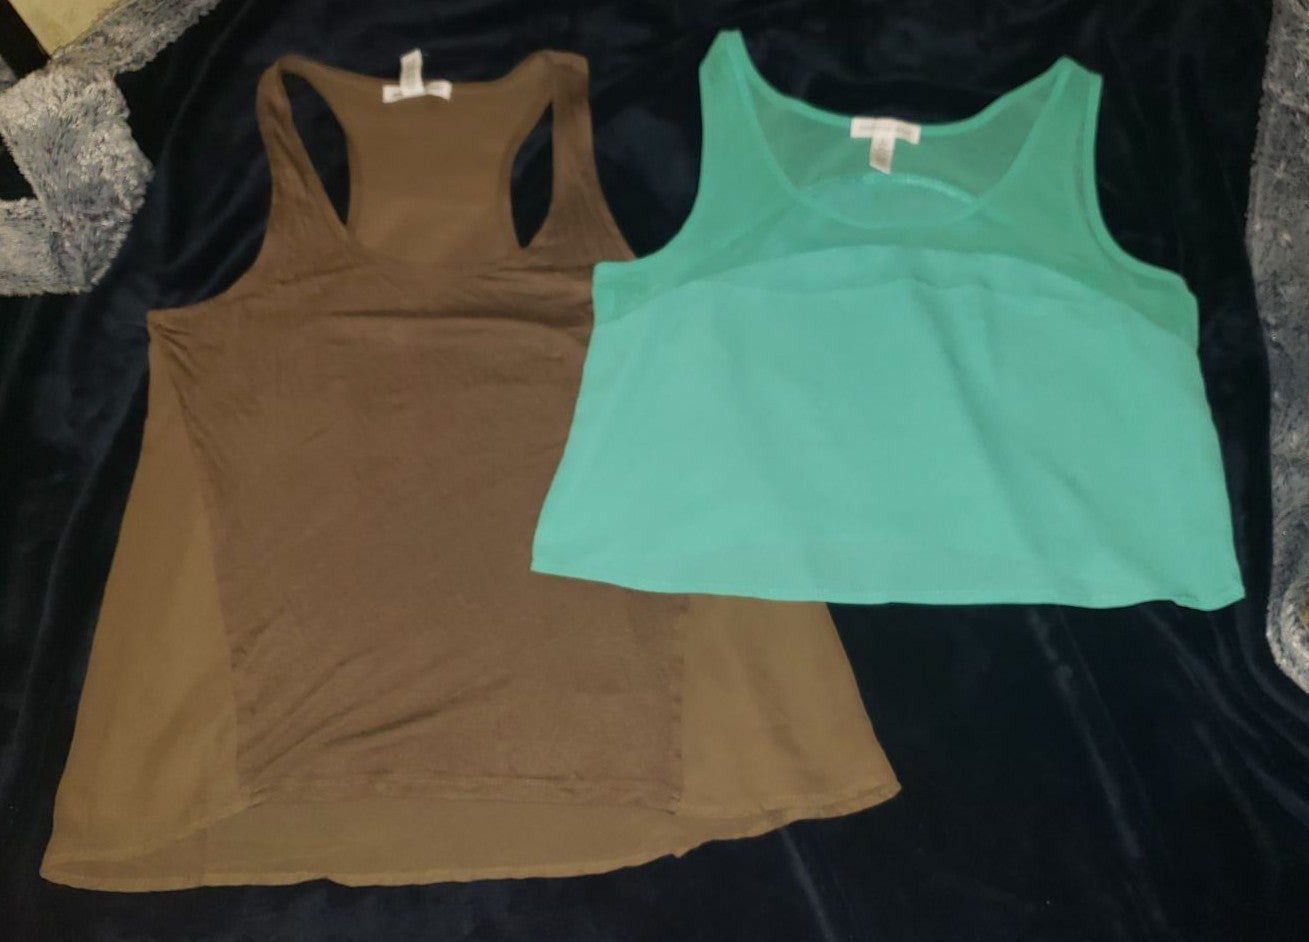 2 NWOT Ambiance Apparel Tops size S